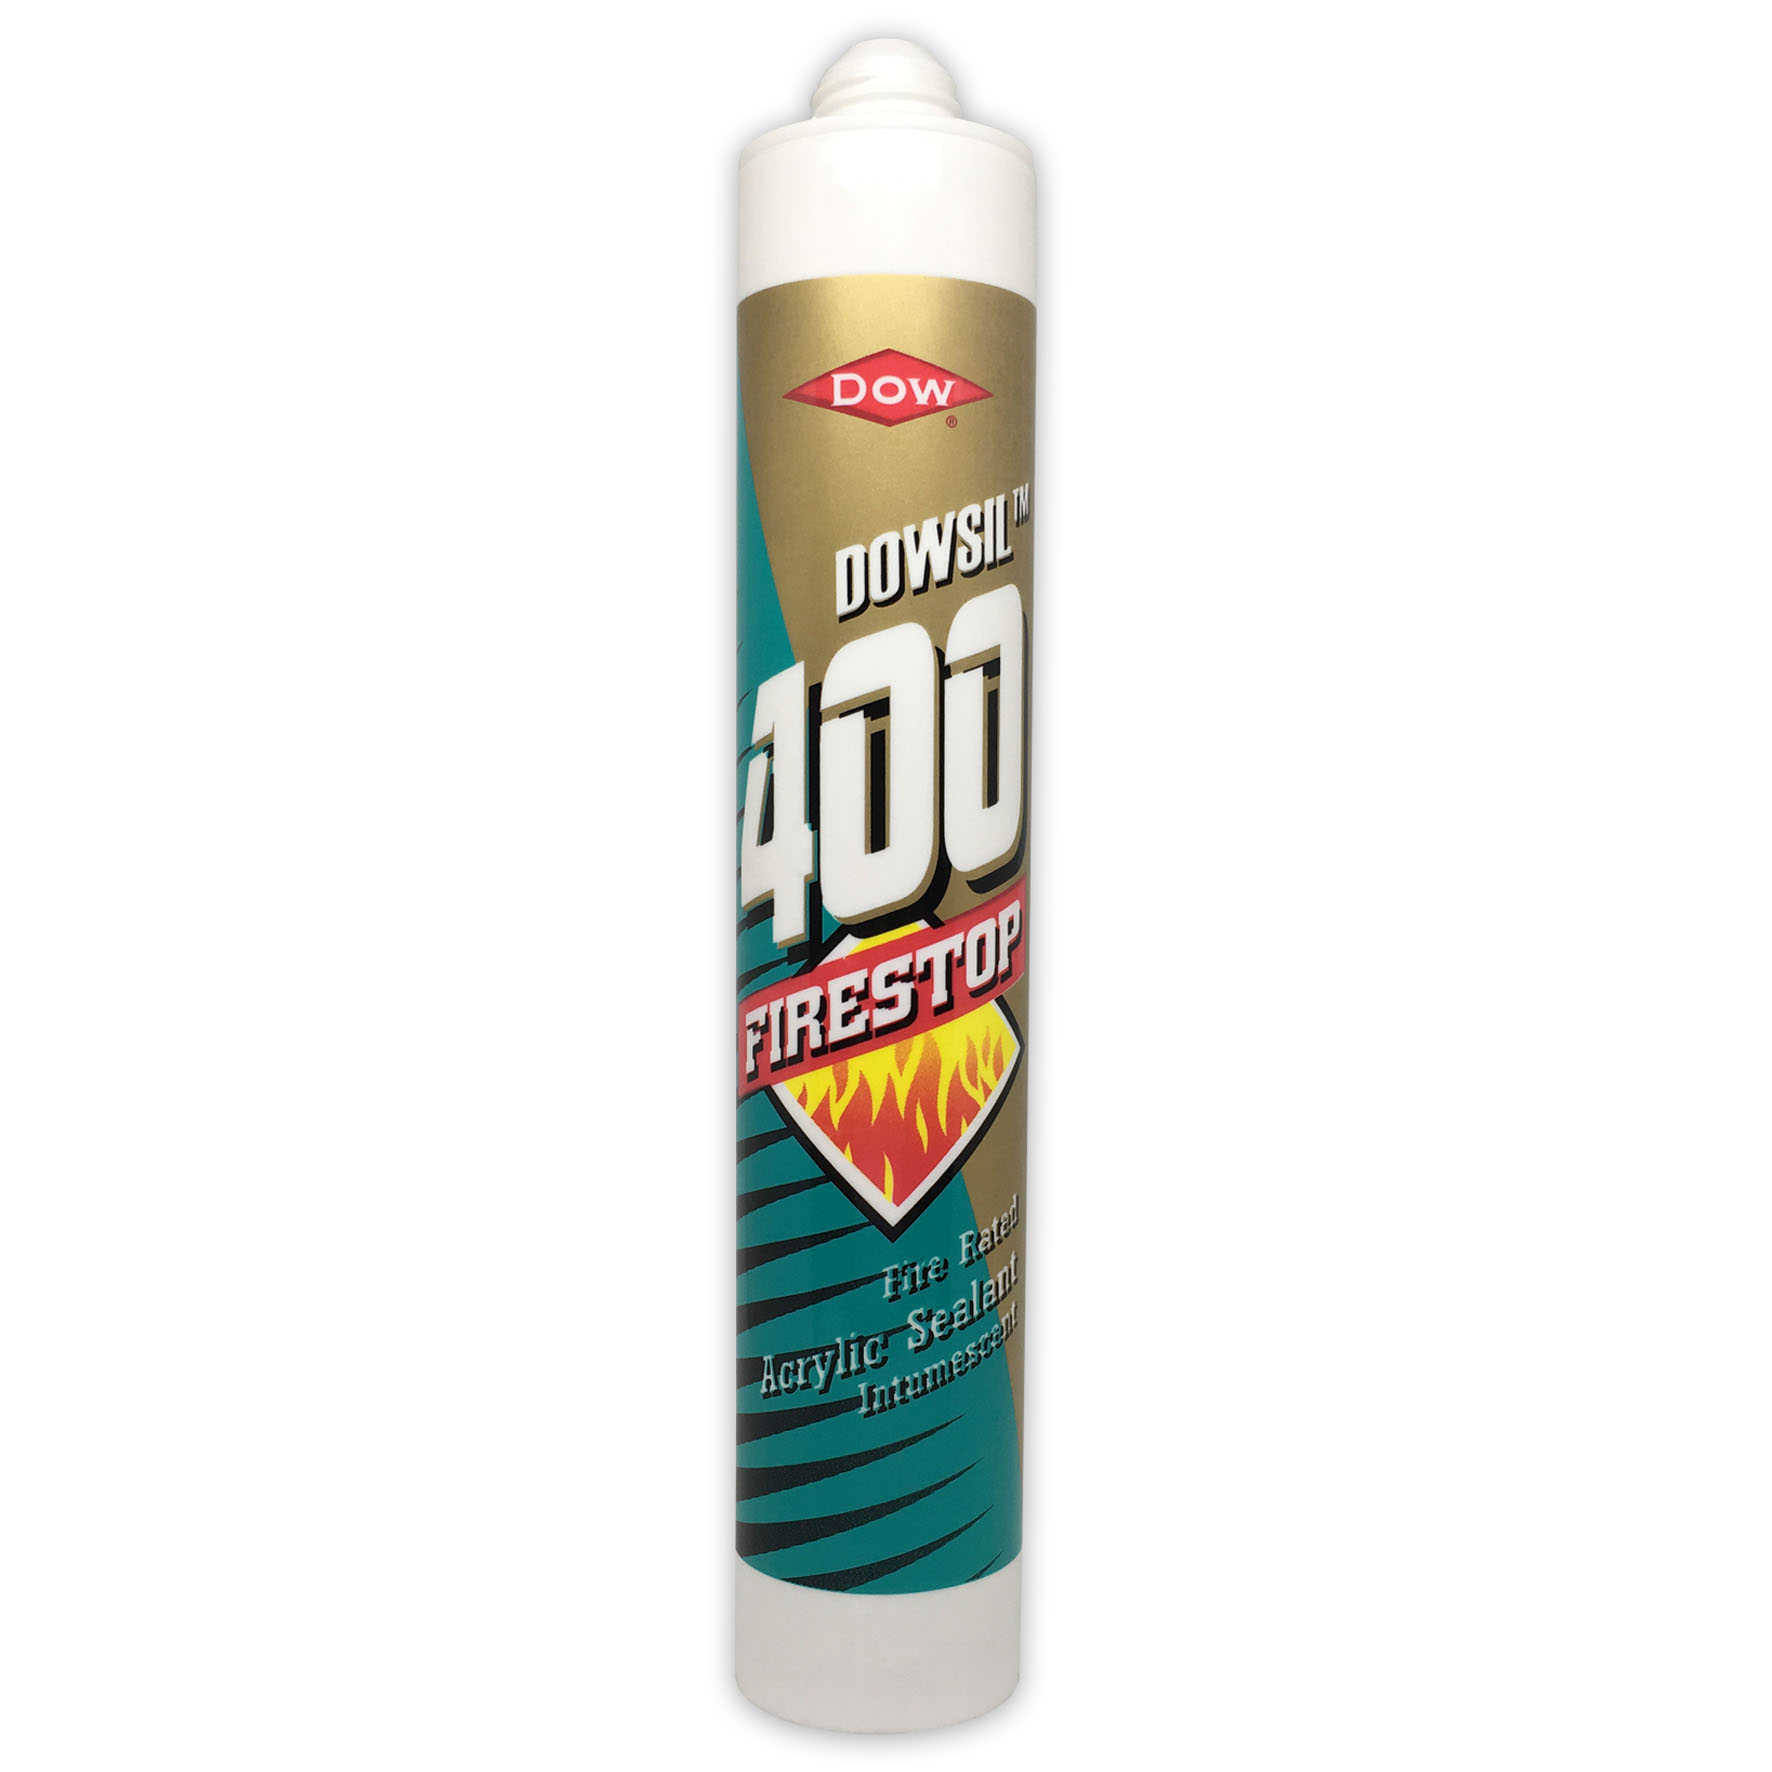 Dowsil Firestop 400 Fire Rate Acrylic Sealant White